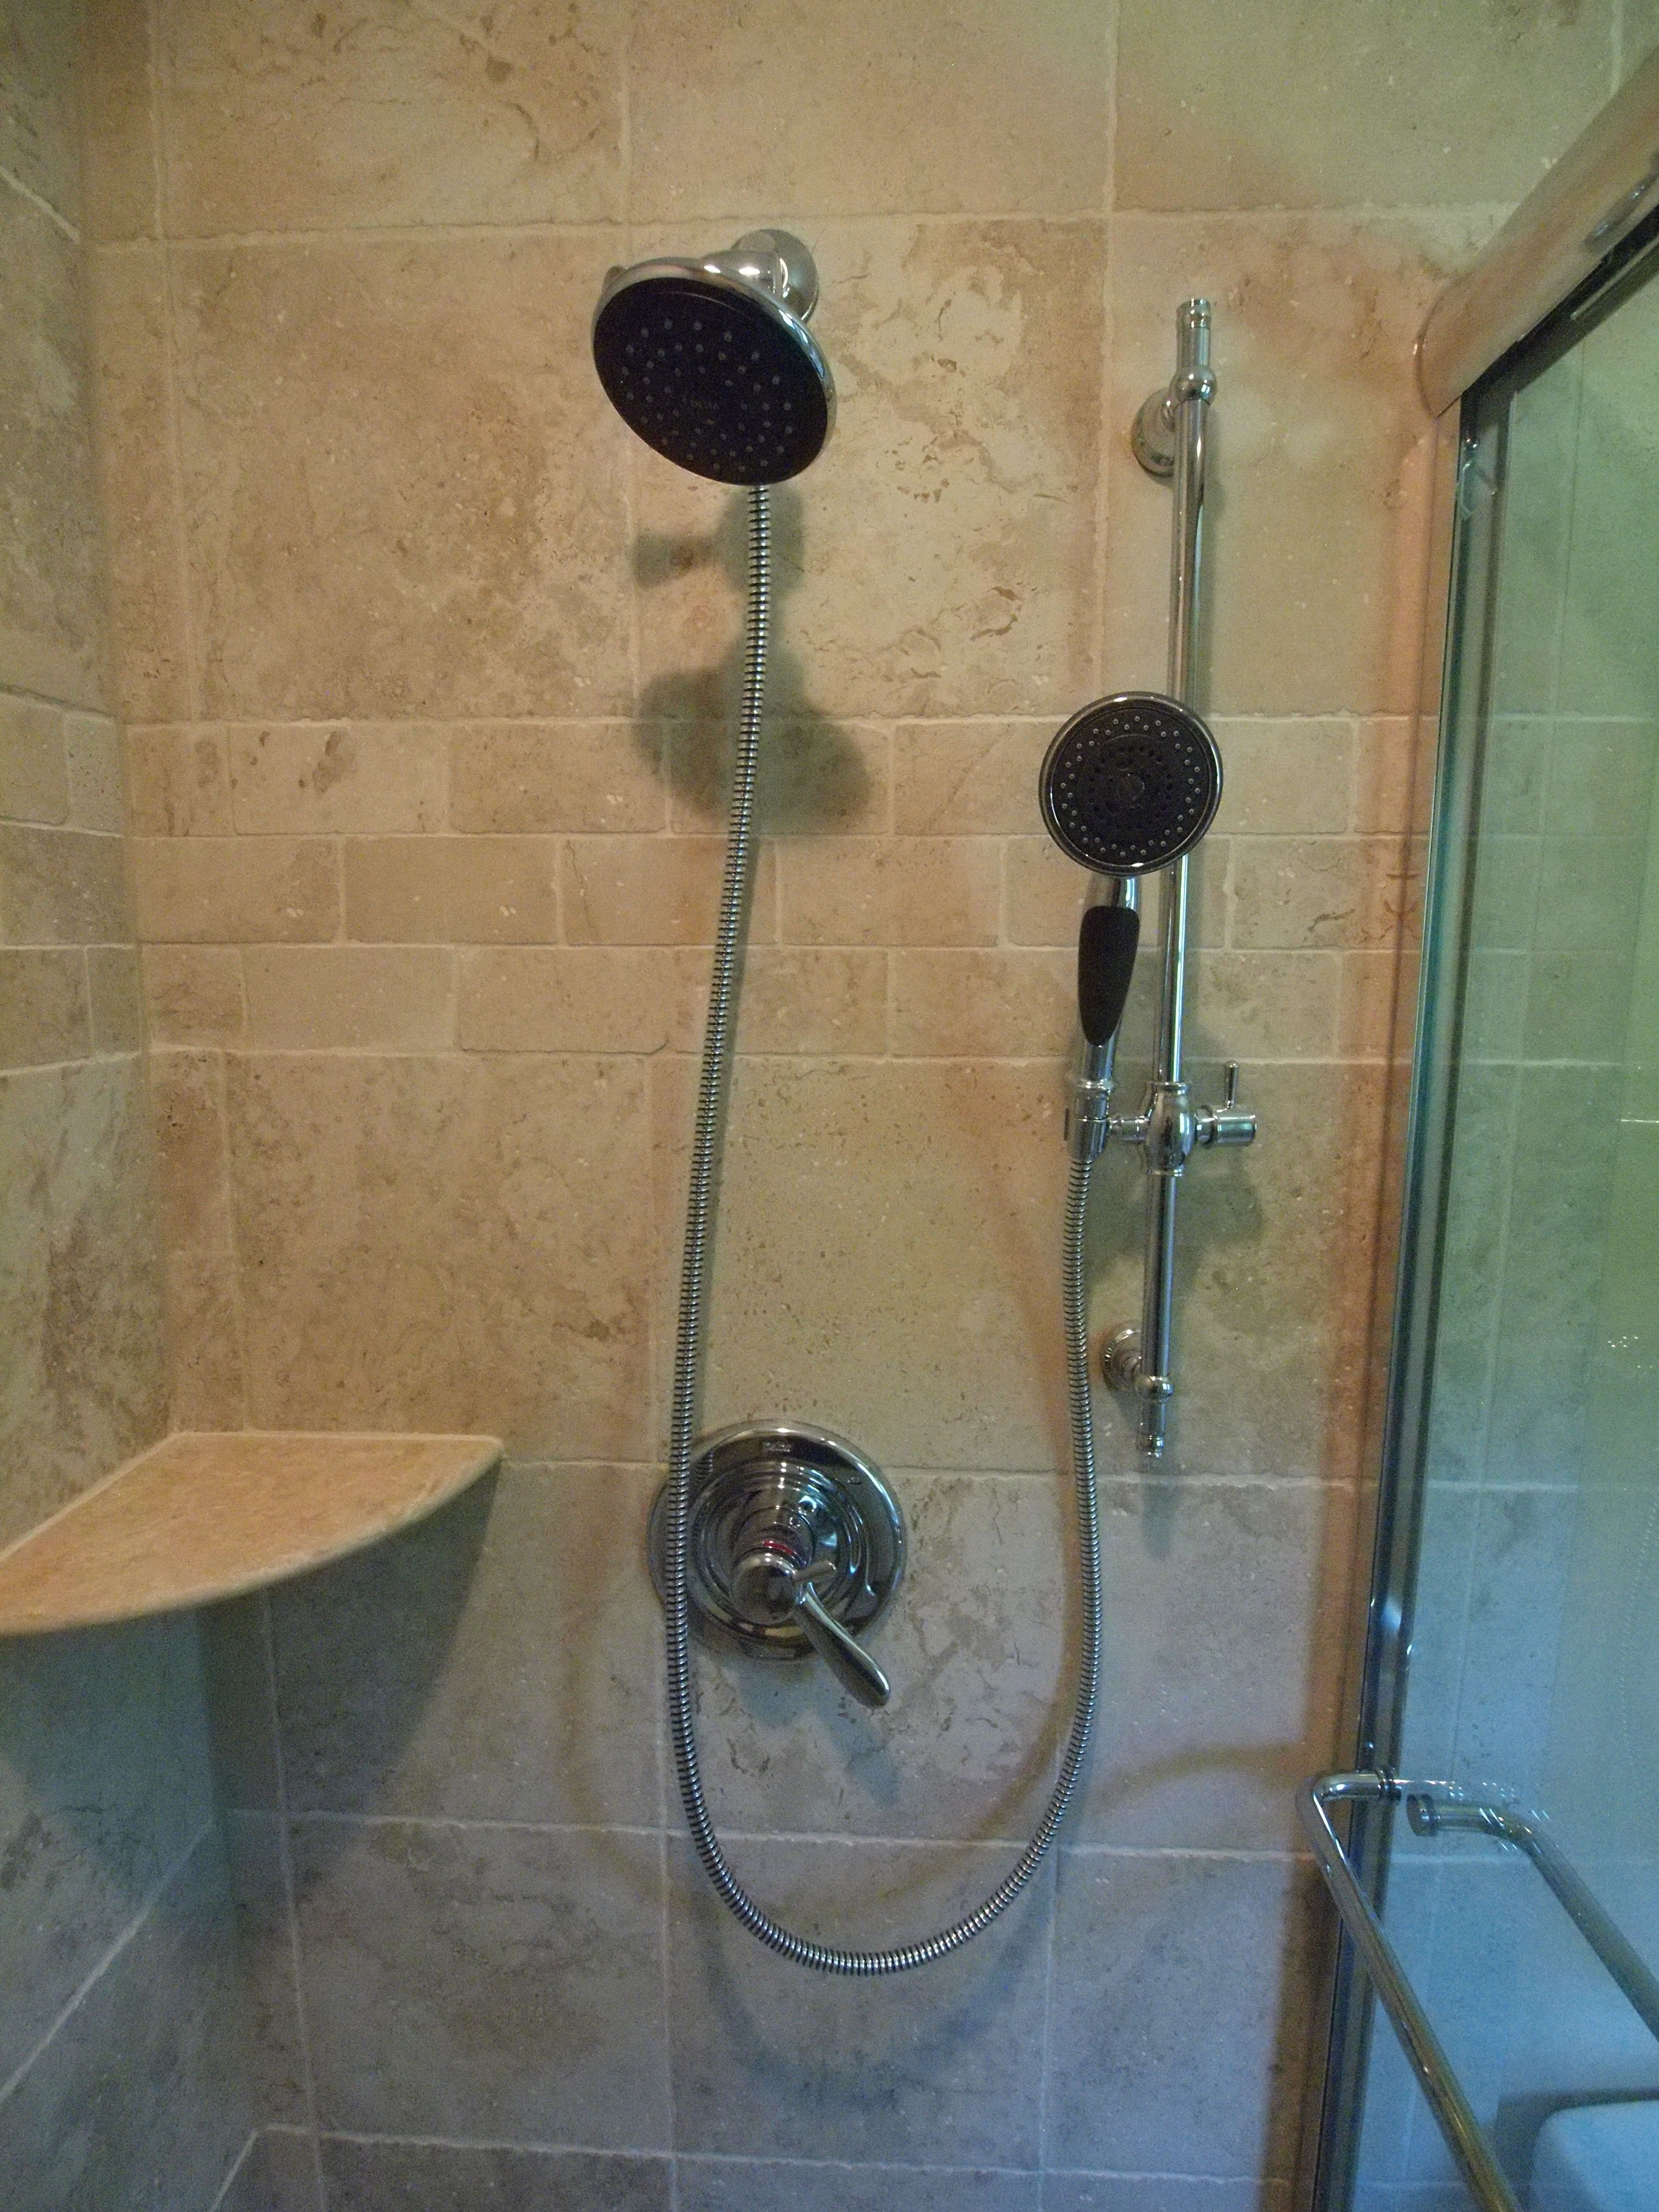 Delta Shower Trim With A Separate Hand Held Shower On A Slider Bar